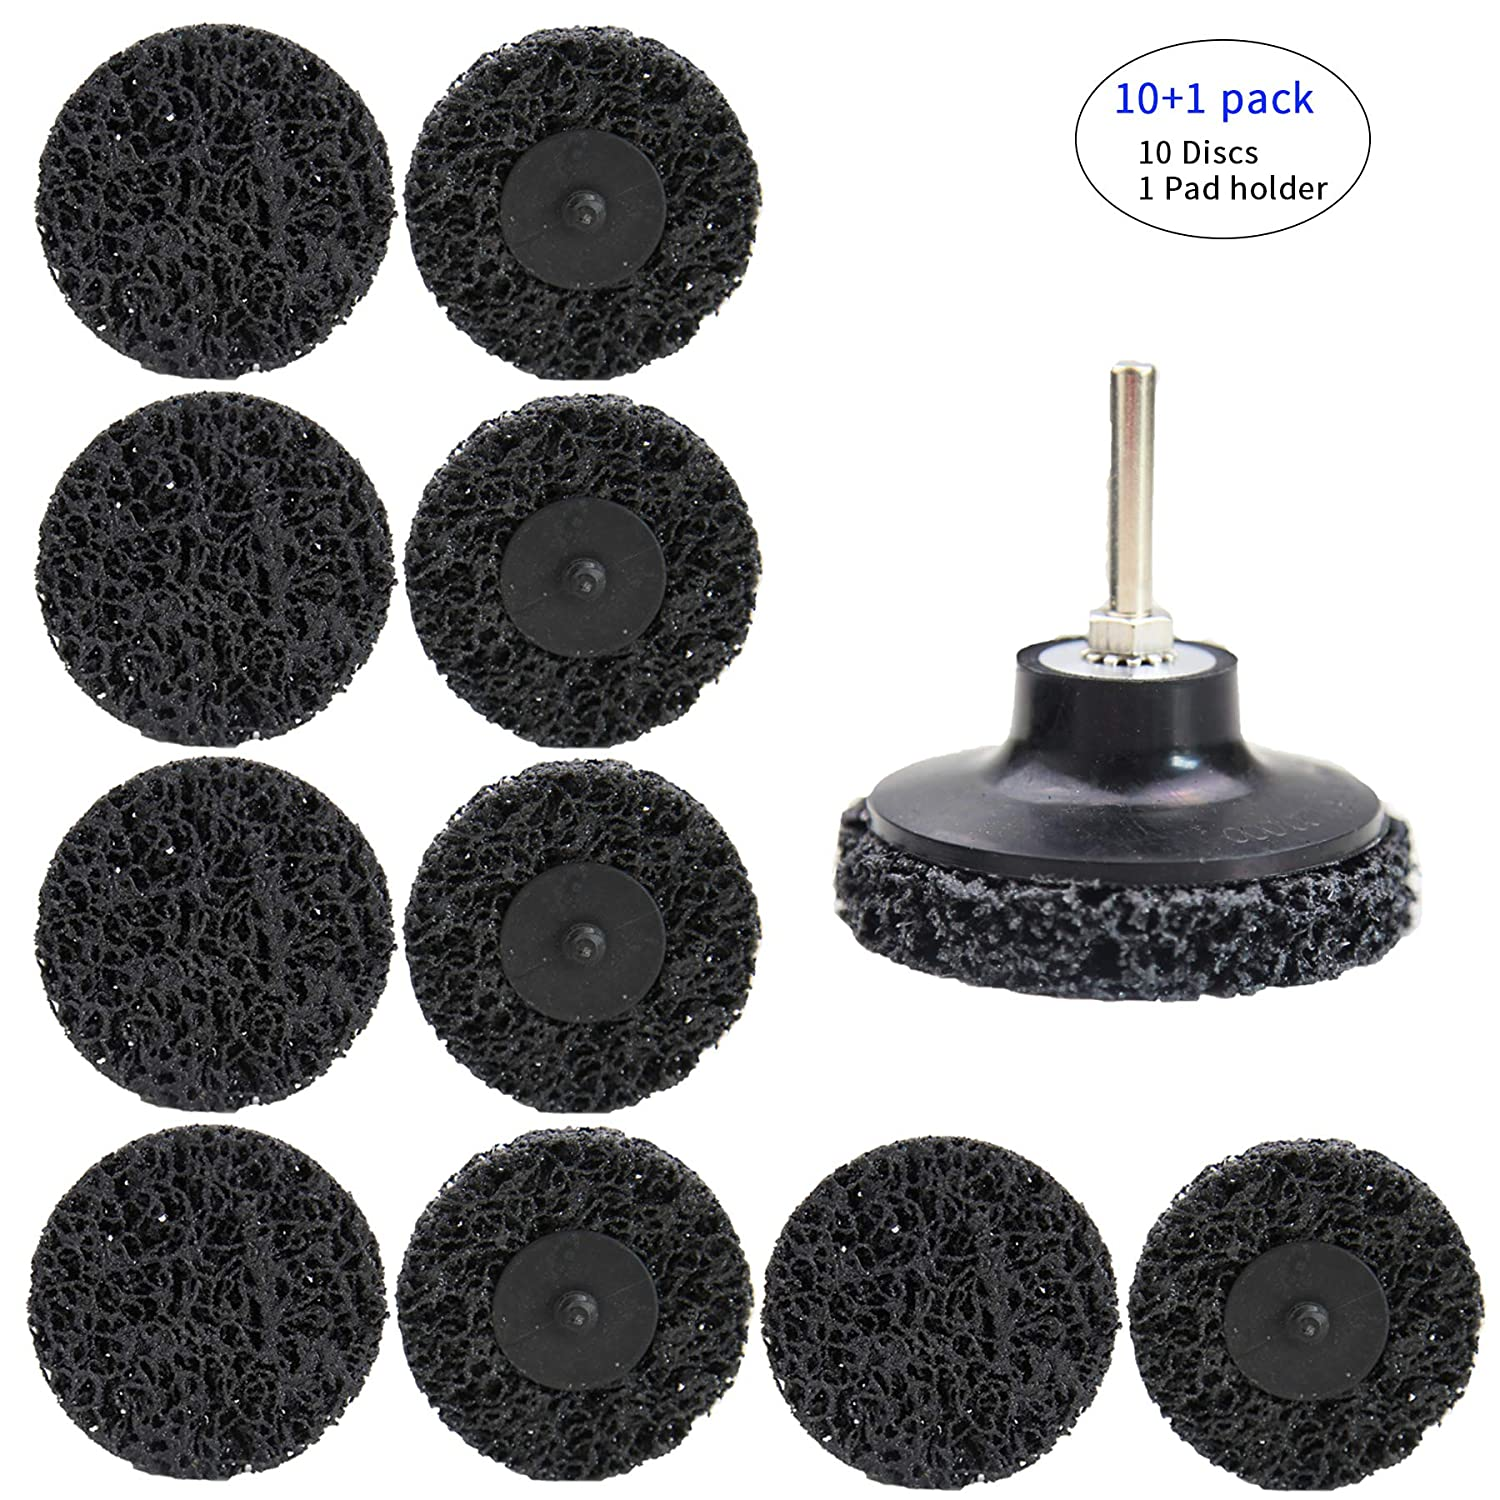 Disc Pad Holder 1 Pack. COSPOF 2 Inch Cleaning /& Stripping Roloc Quick Change Sanding Disc,Remove Paint,Rust and Oxidation,Type-R Connection,Roloc Disc 10 Pack